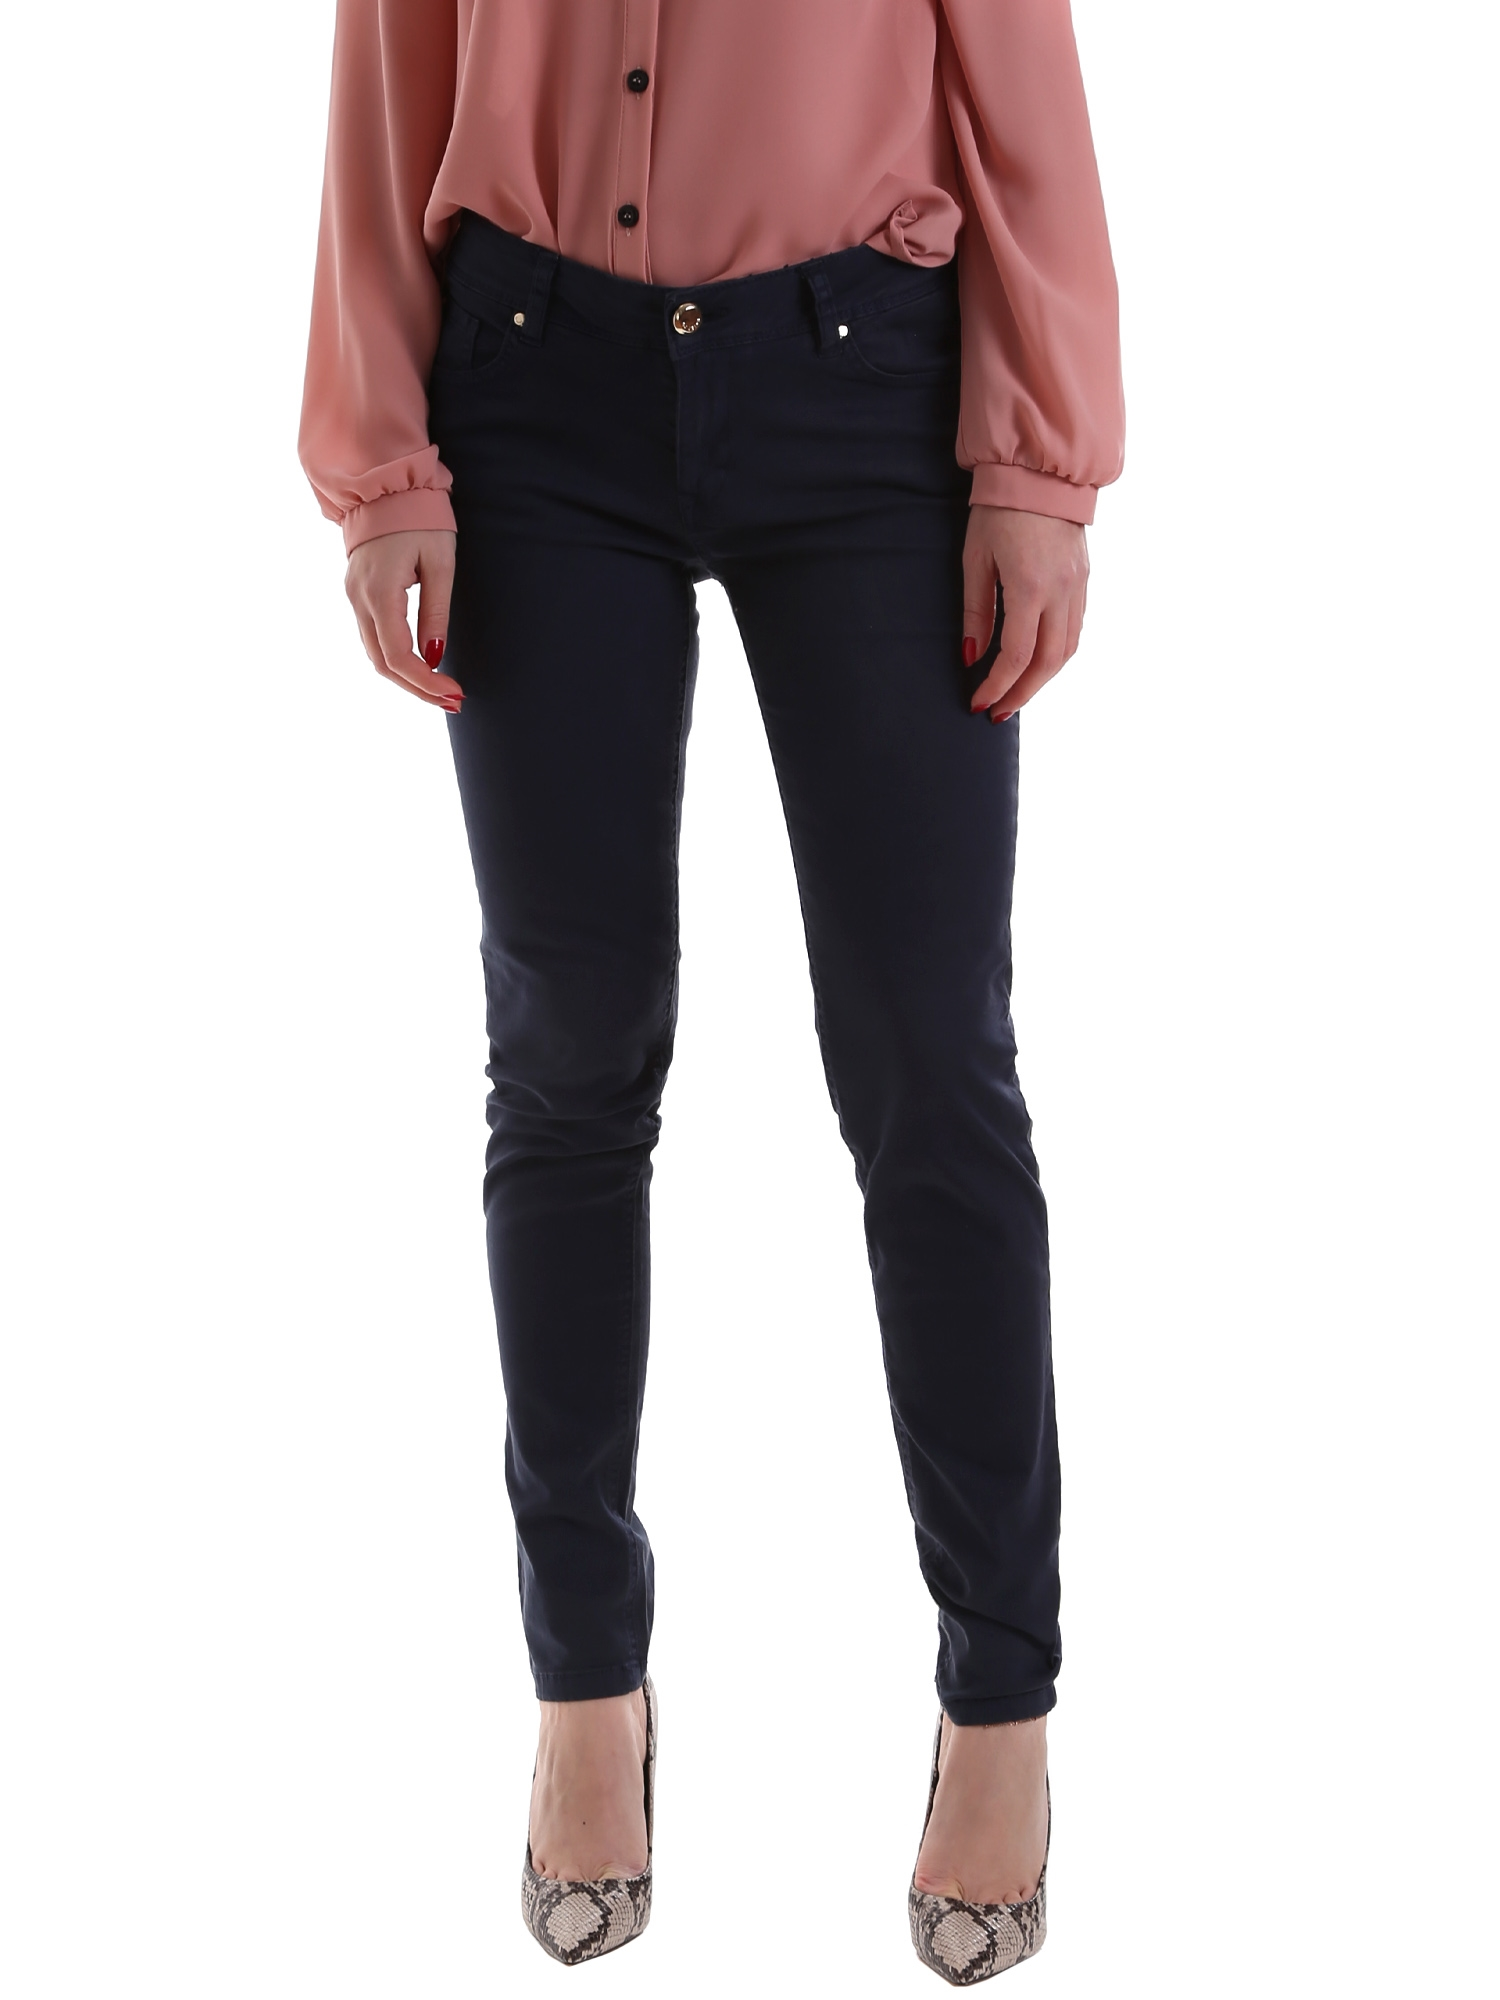 5-pocket trousers, the skinny fit  GAUDI |  | BD250112001